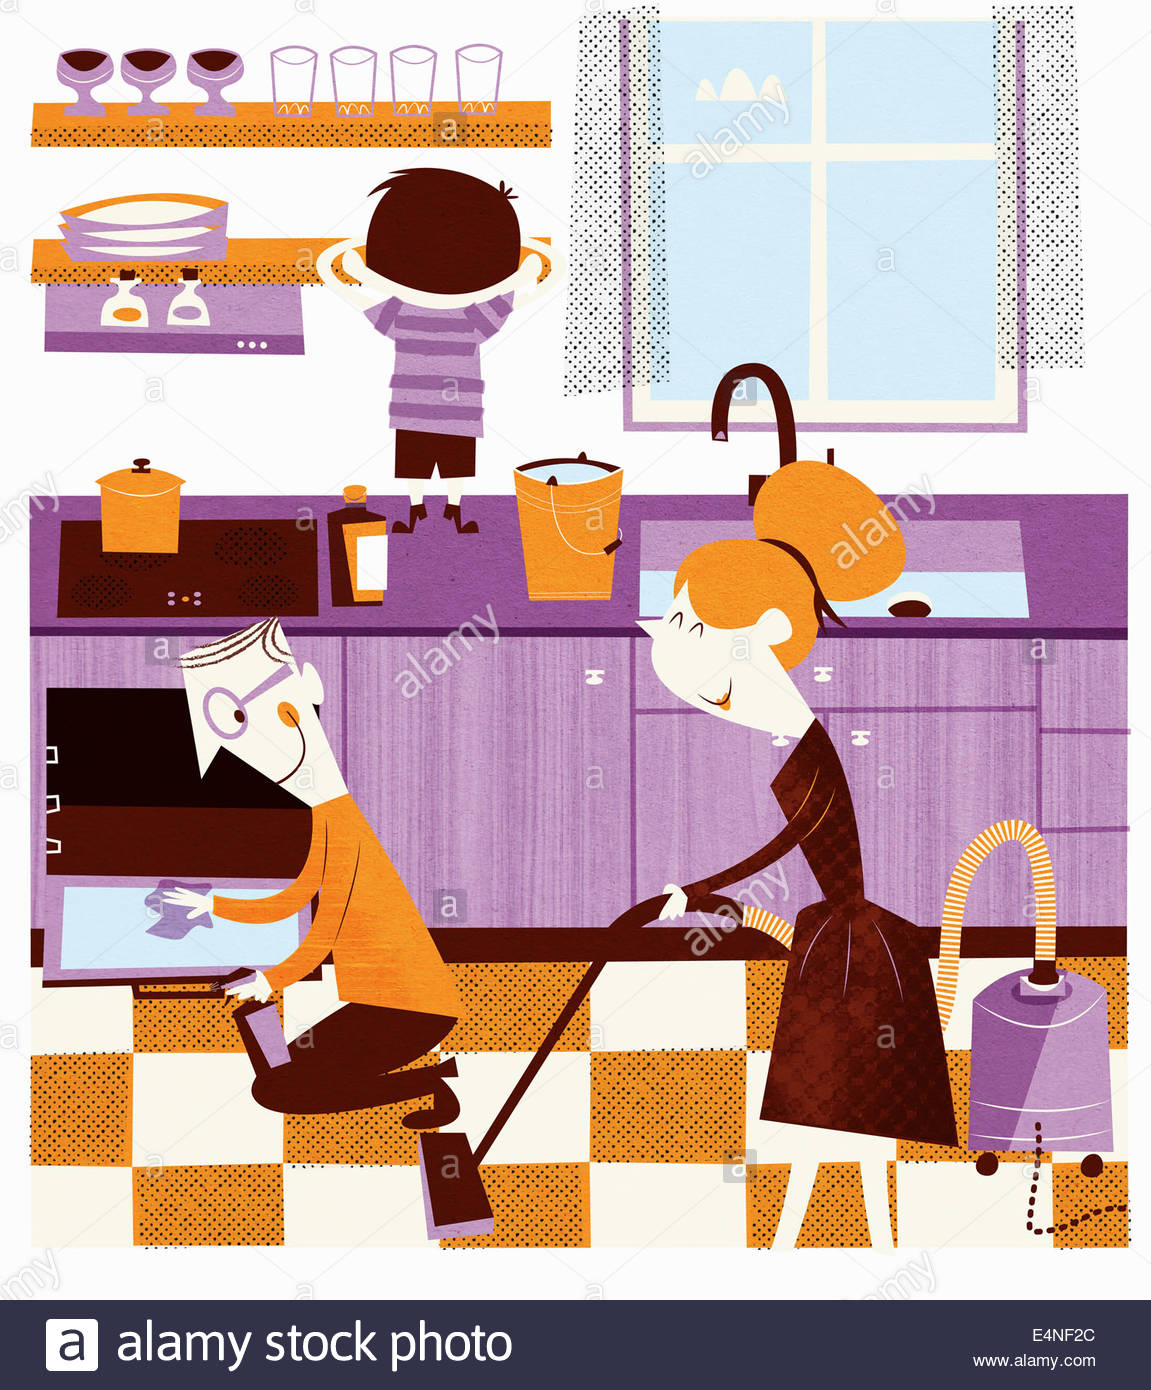 Happy family working together in kitchen to spring clean home - Stock Image